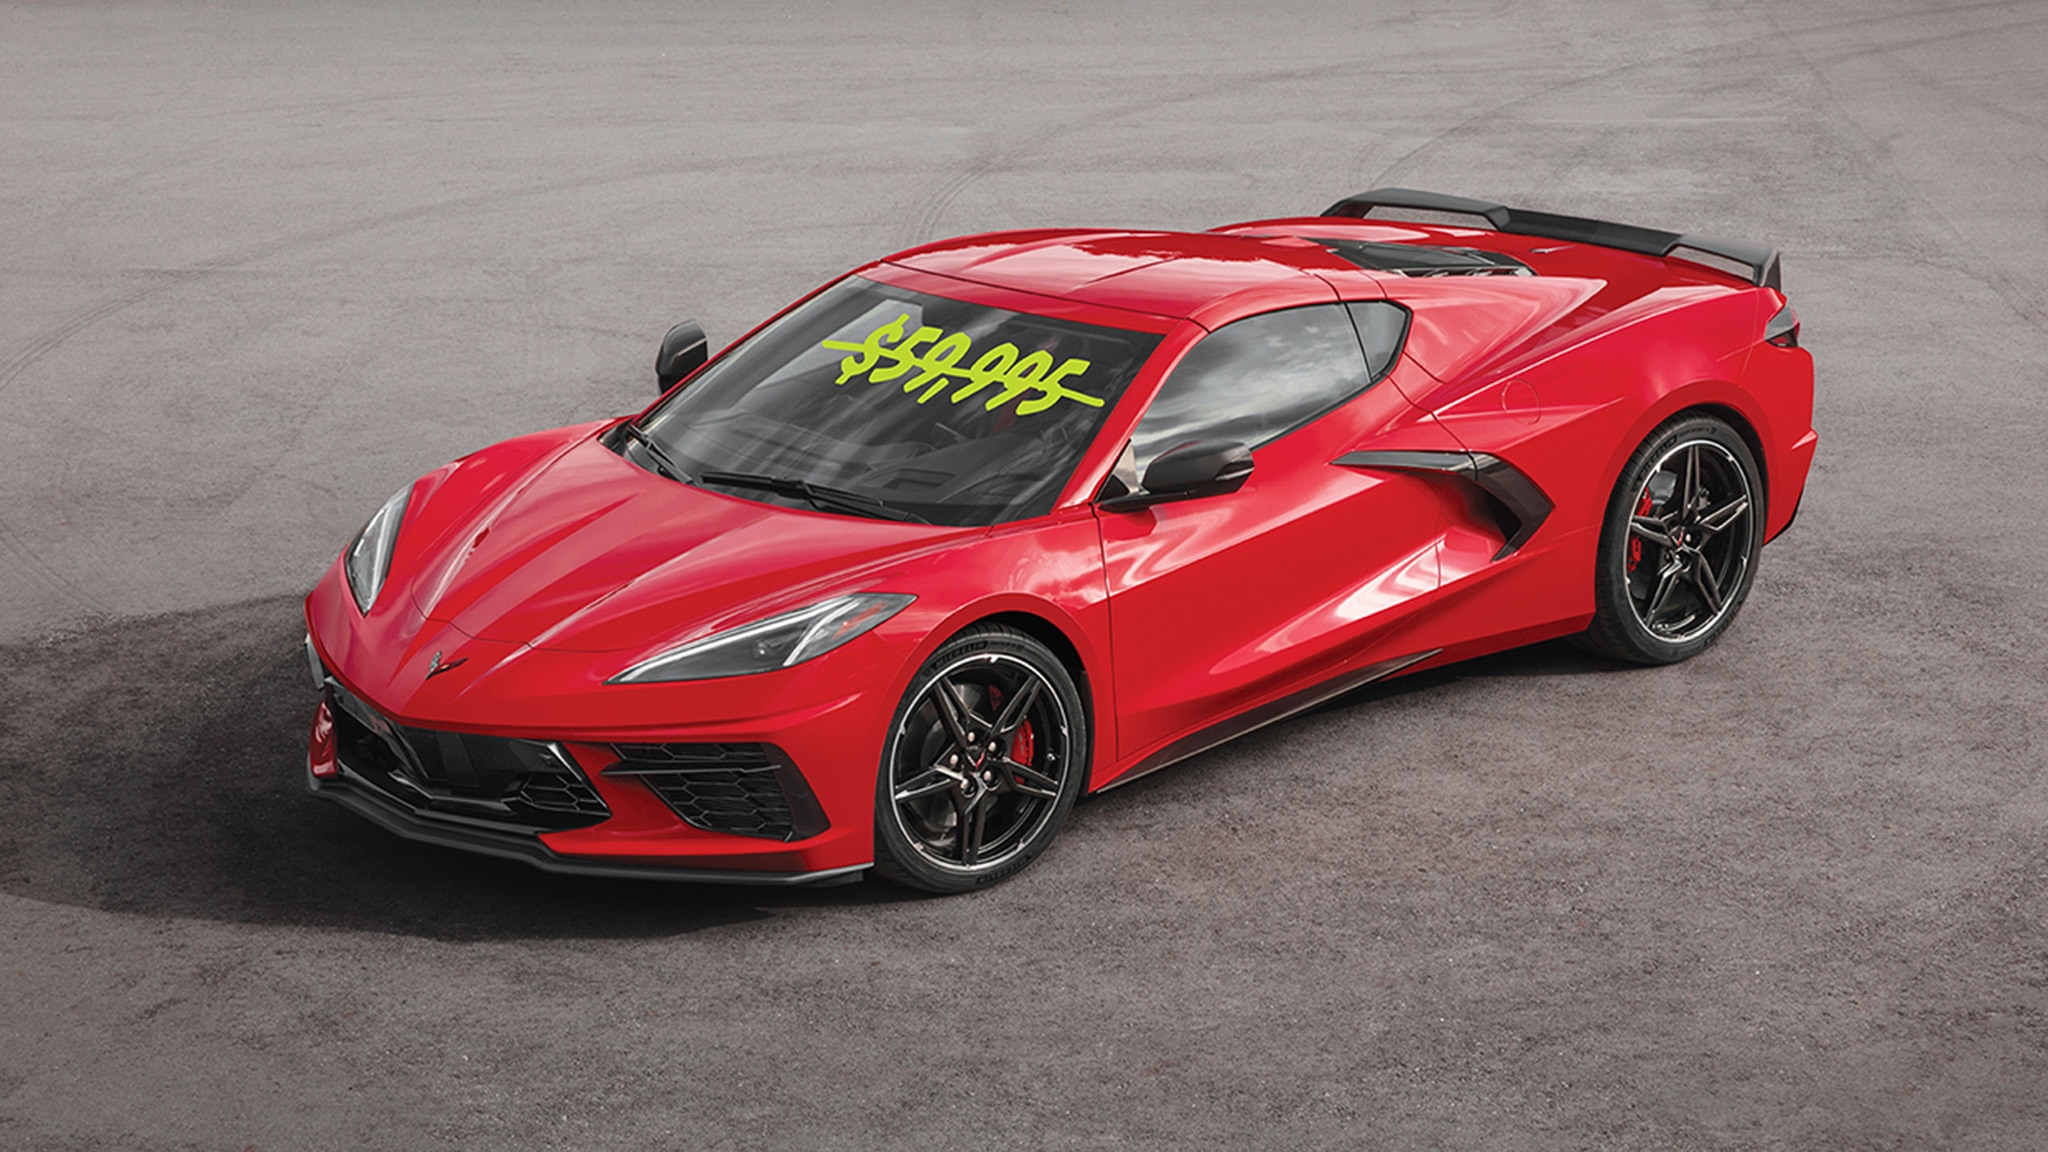 The 2020 C8 Chevrolet Corvette S Sub 60k Base Price Will Only Last A Year